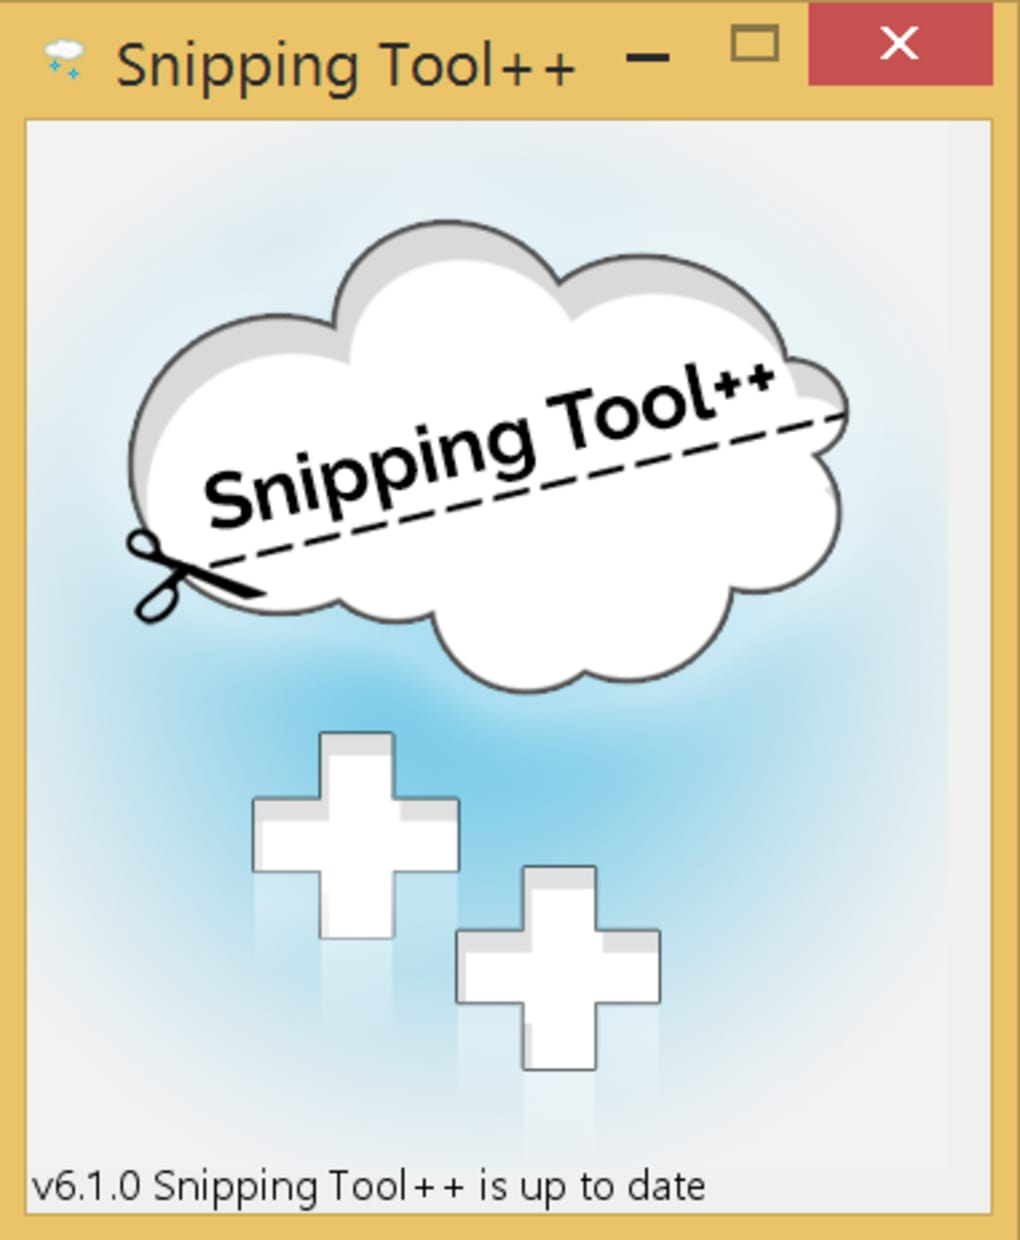 Snipping Tool++ - Download